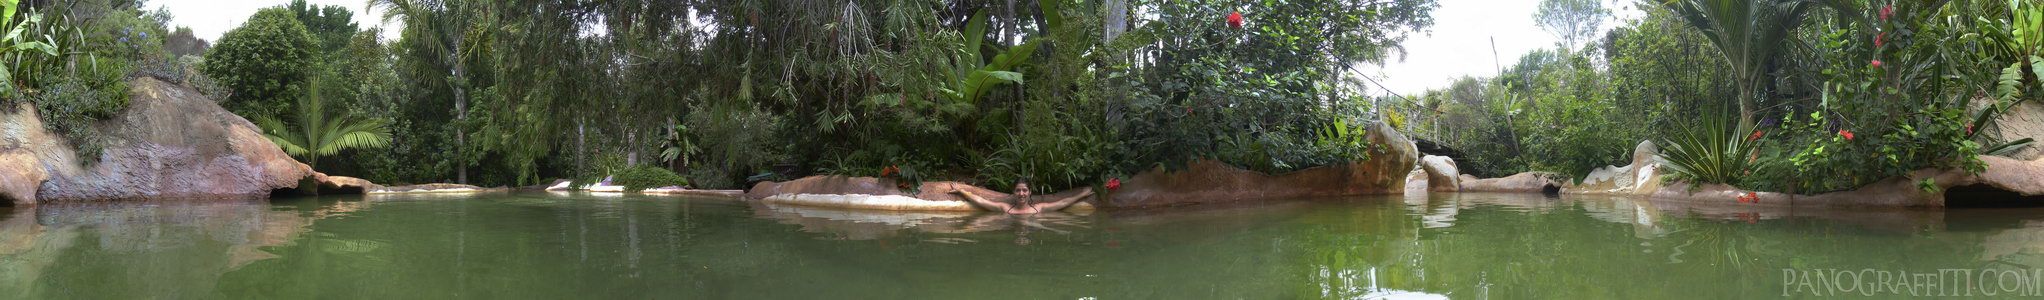 Lost Spring Hot Pools 360 - A 360 degree view of Lost Spring Spa in Whitianga